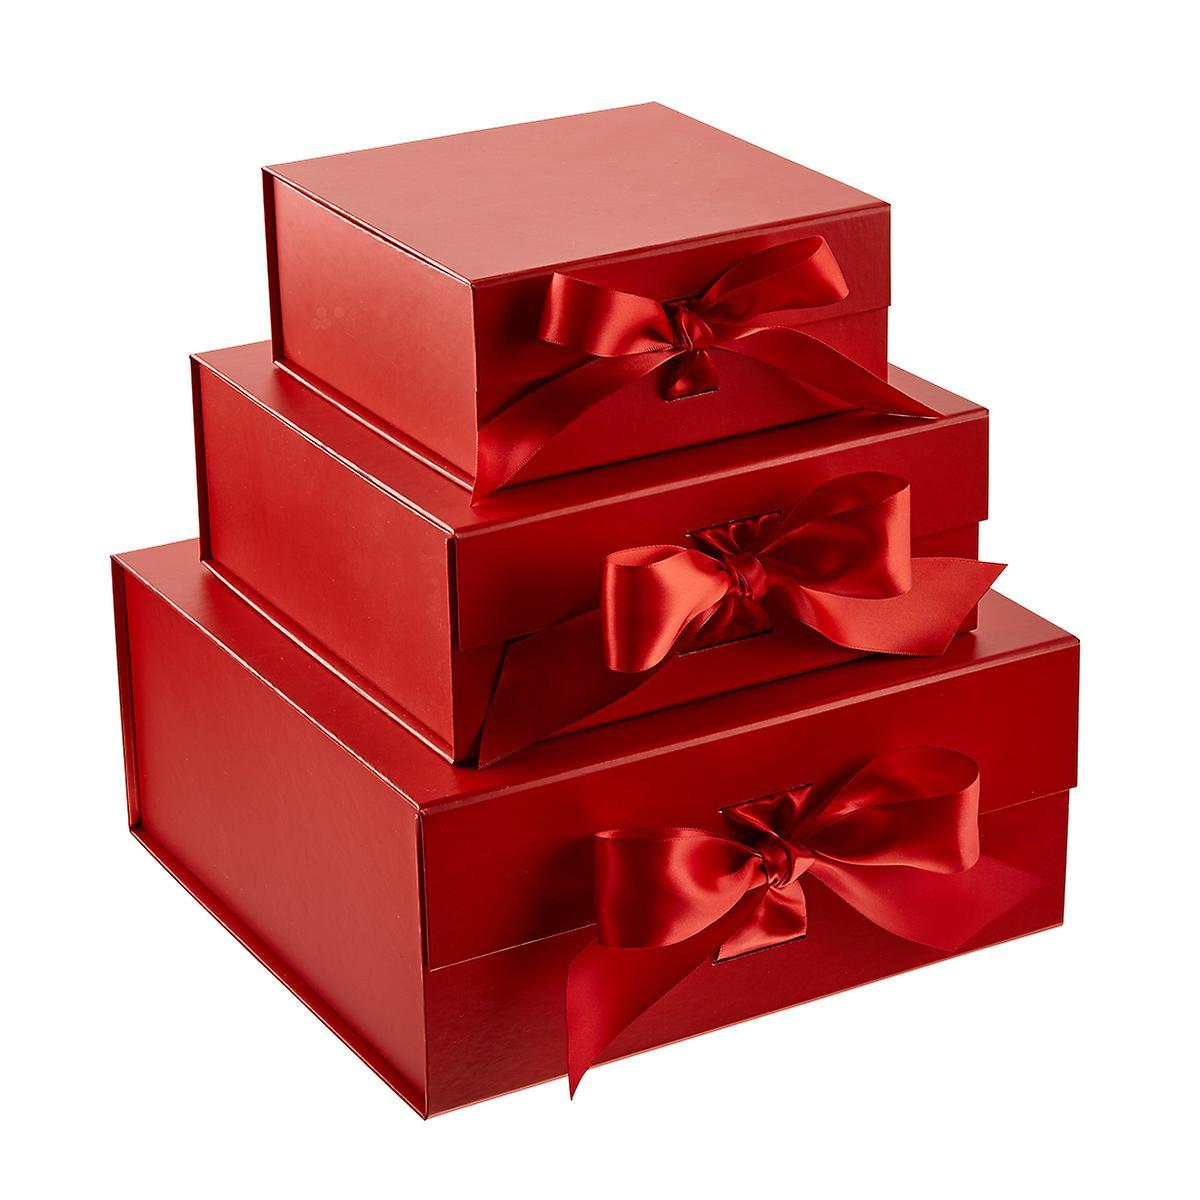 Collapsible Gift Boxes with Bow